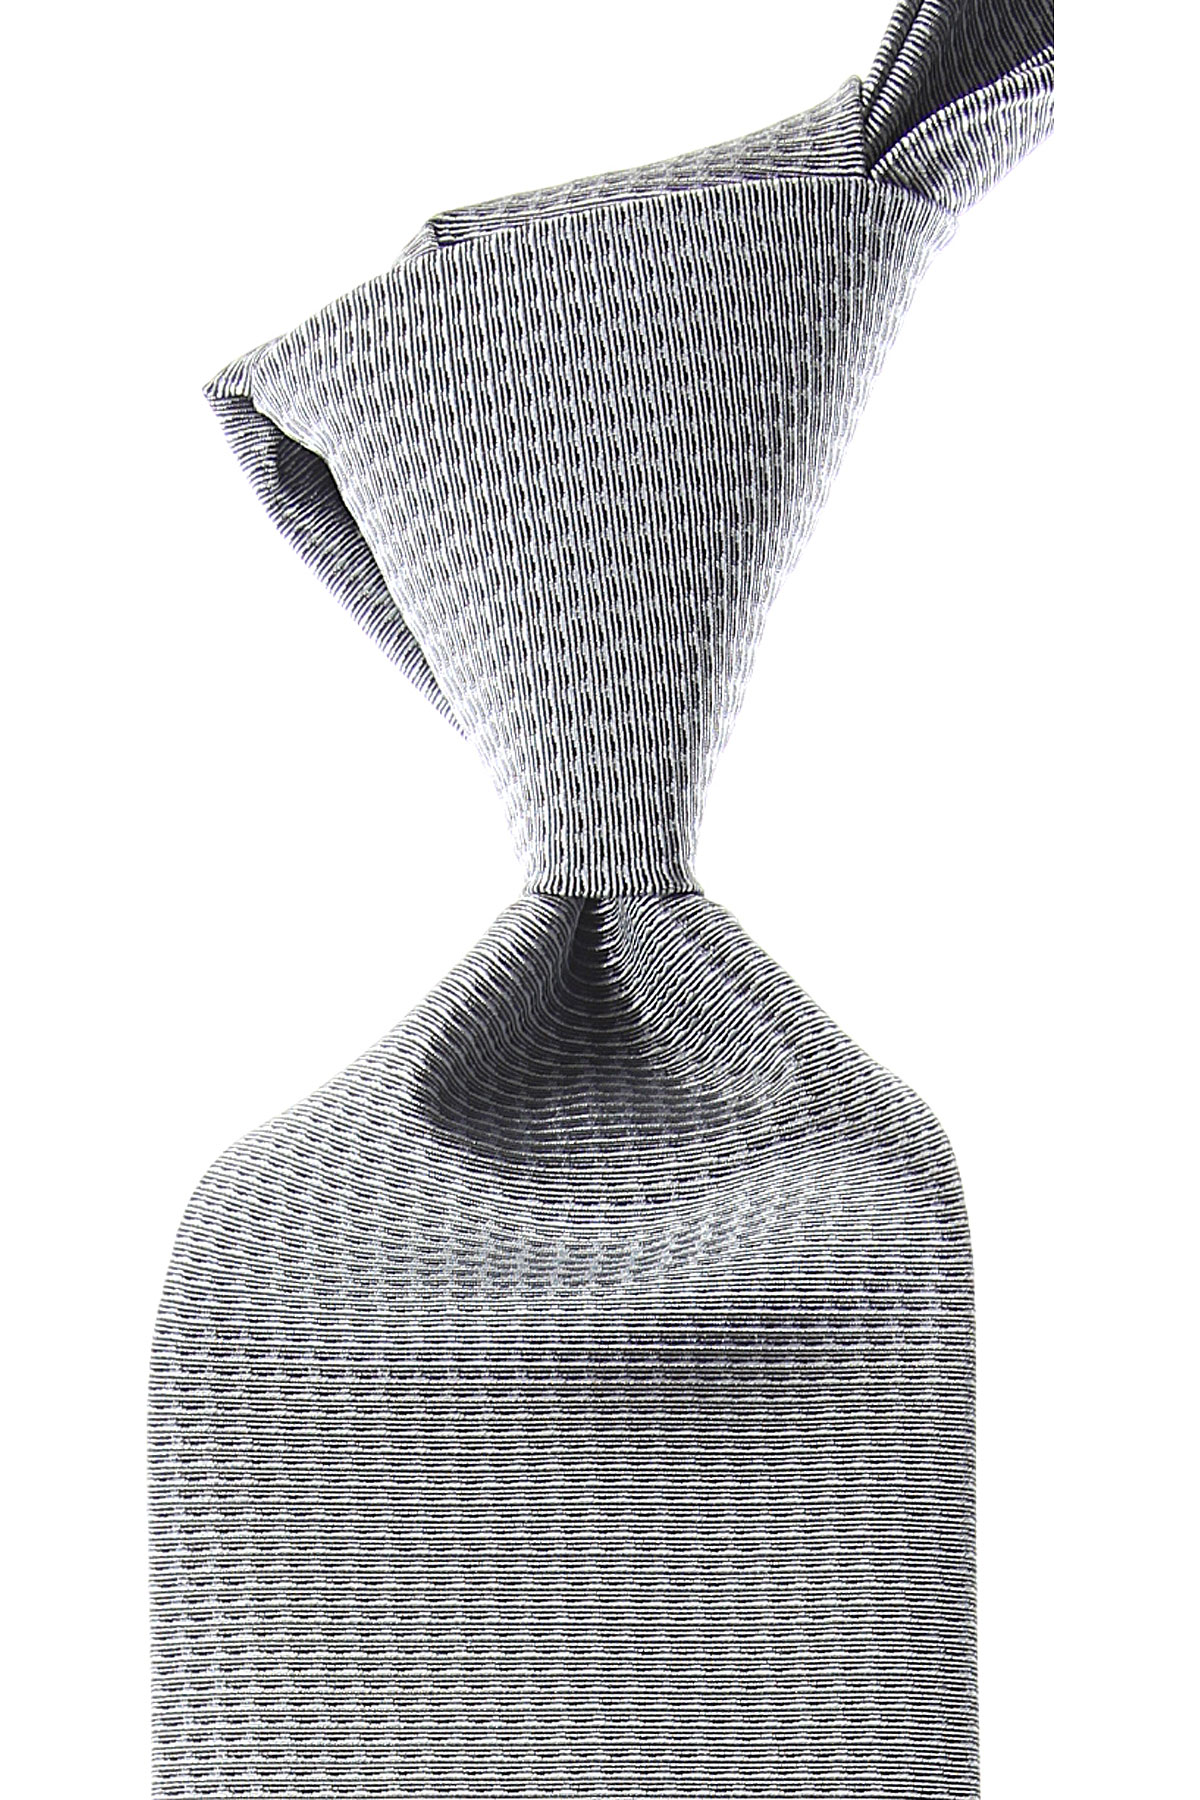 Ermenegildo_Zegna_Ties_On_Sale_Ash_Gray_Silk_2019